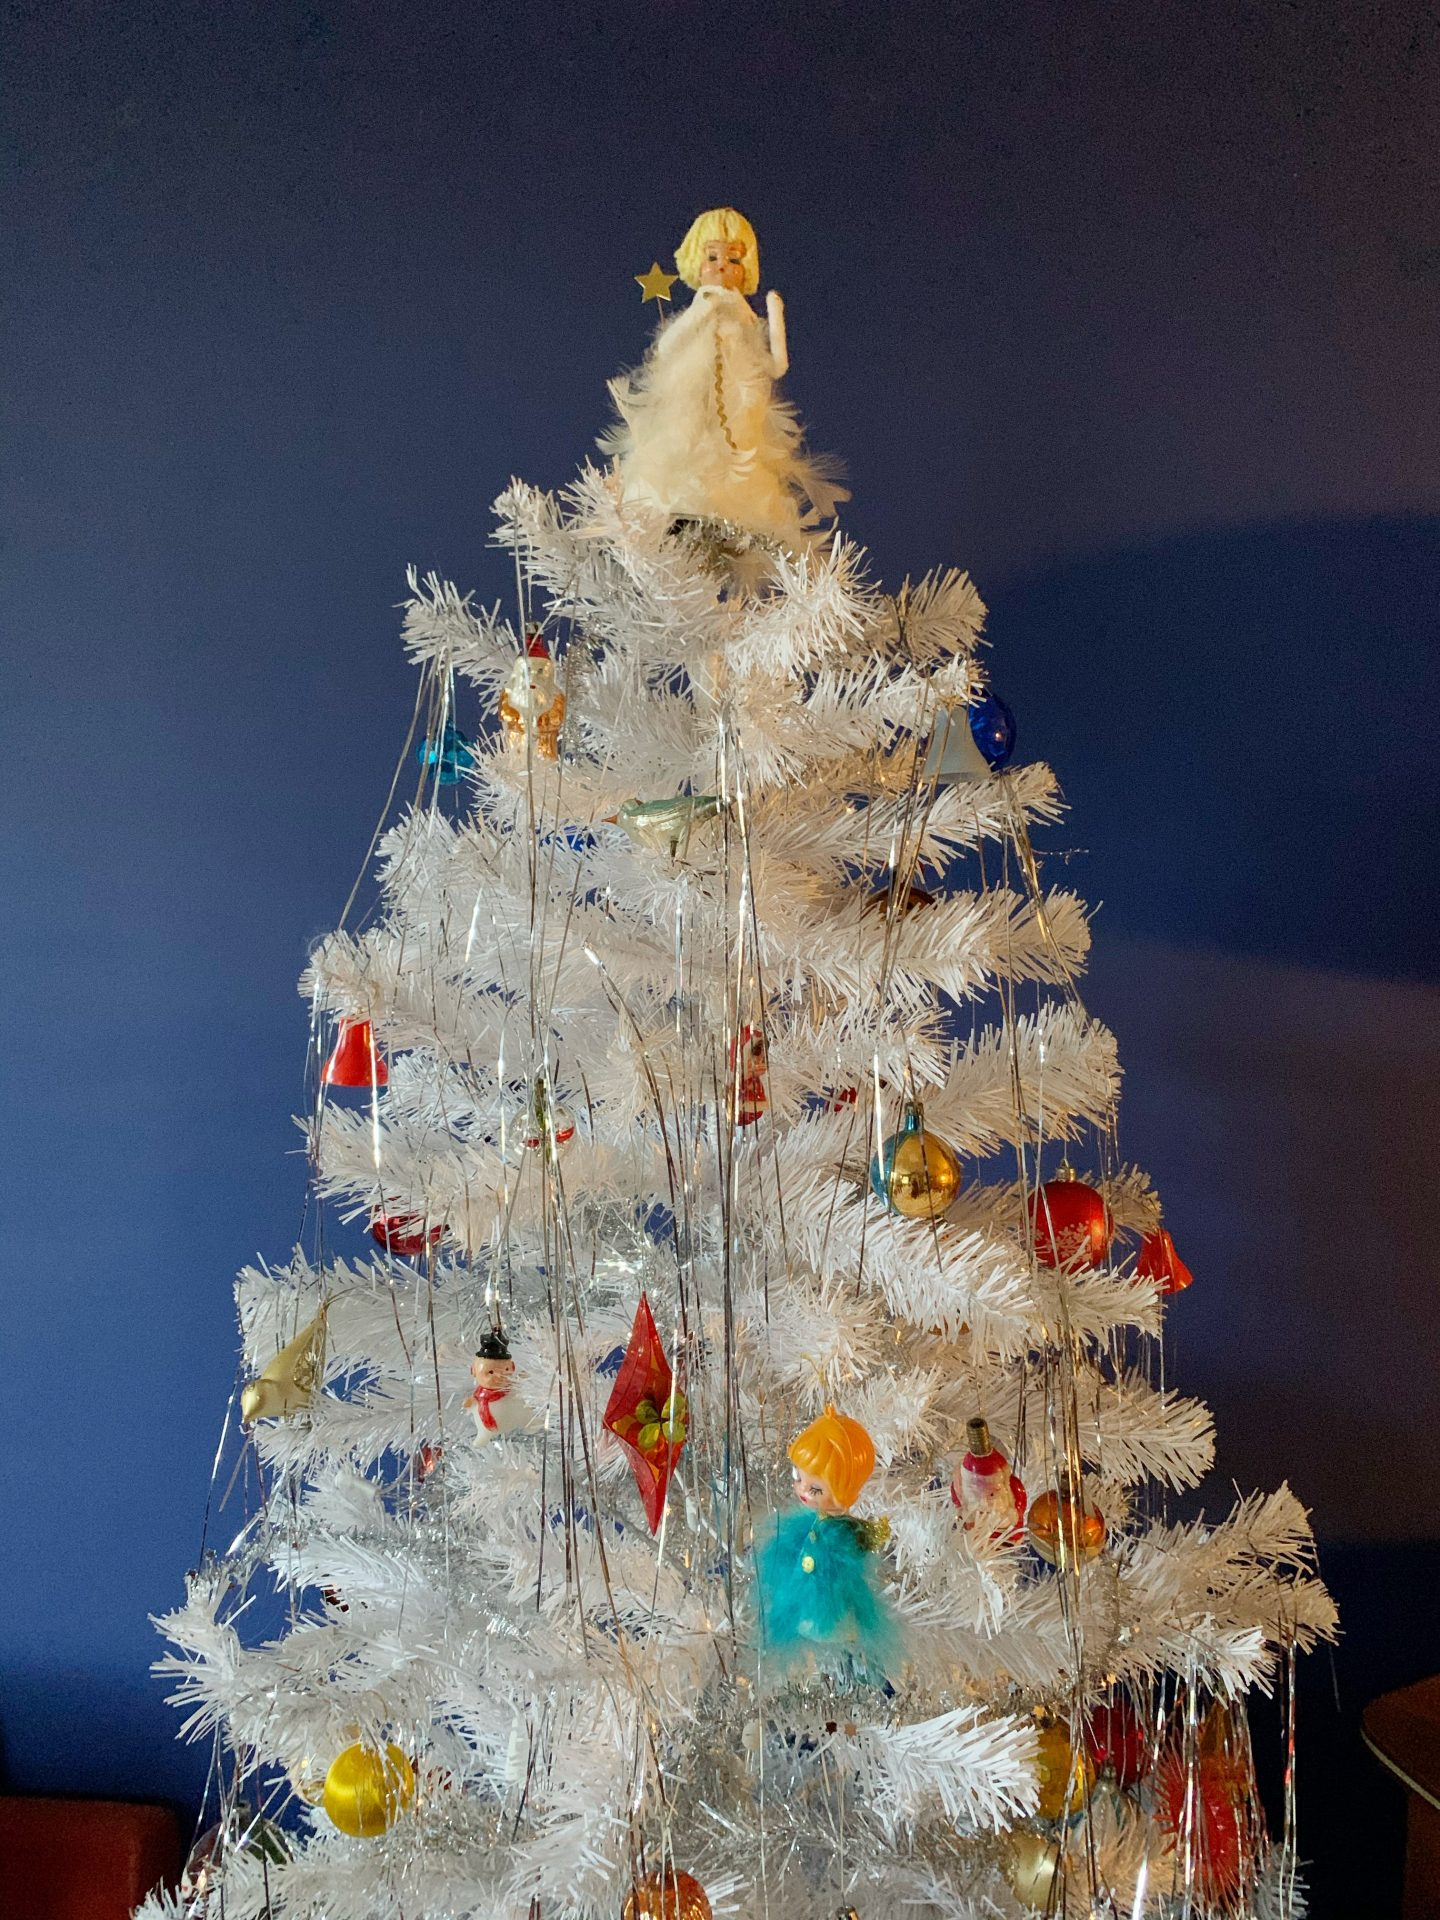 Our Vintage Christmas Decorations with white tree